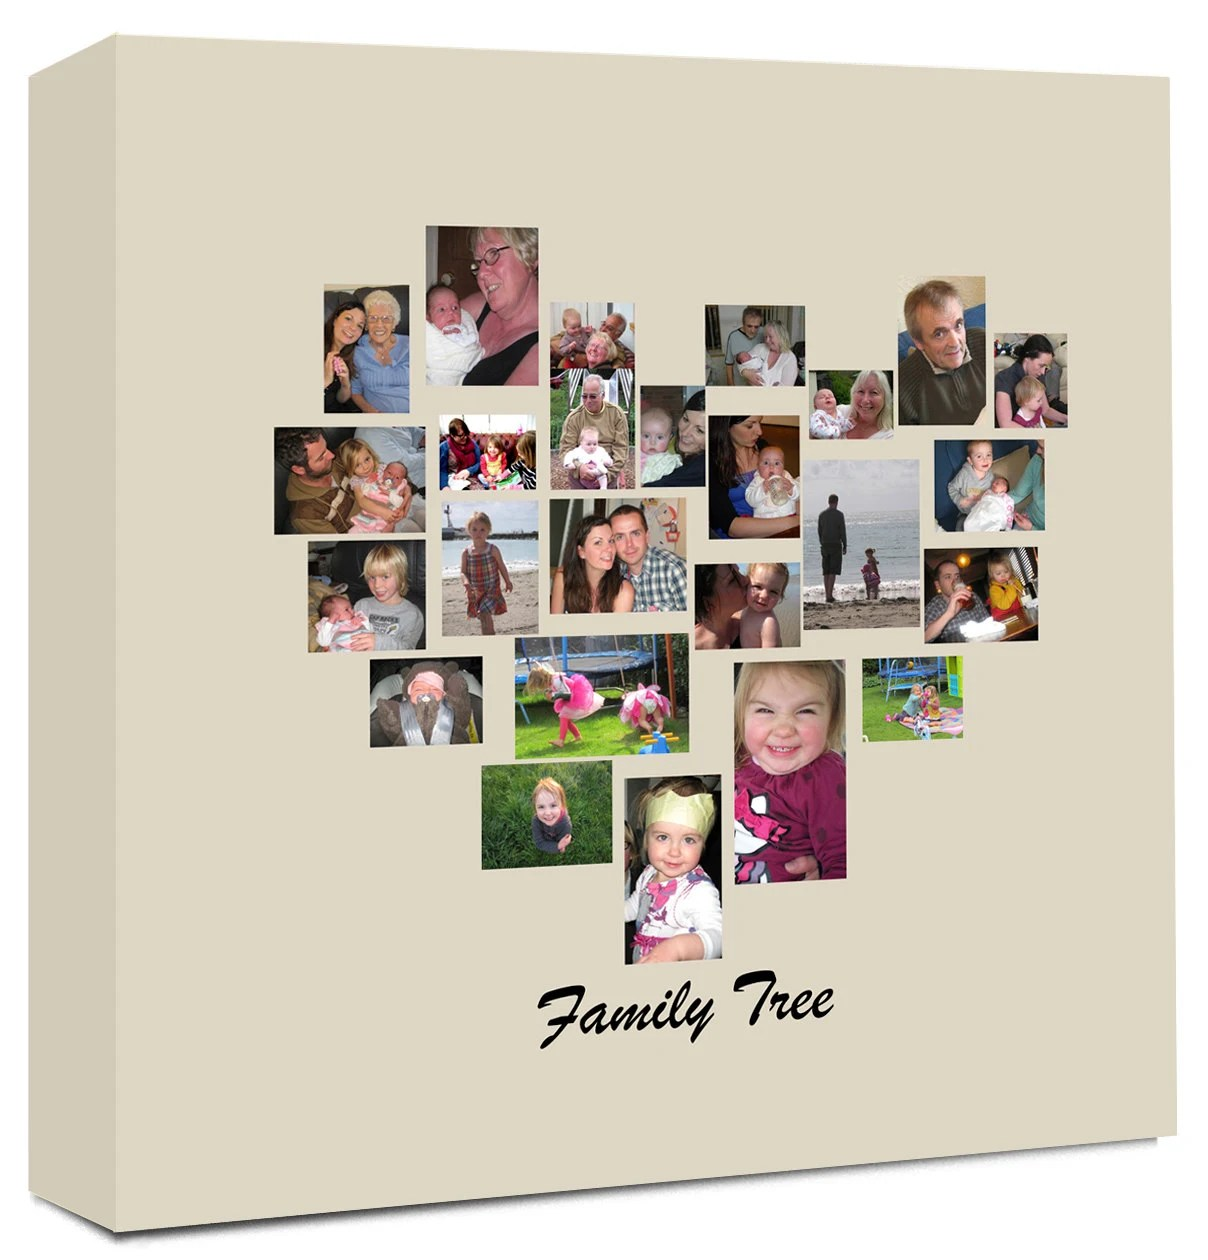 Fotocollage Hochzeit Family Tree Heart Shaped Photo Collage On Canvas Ready To